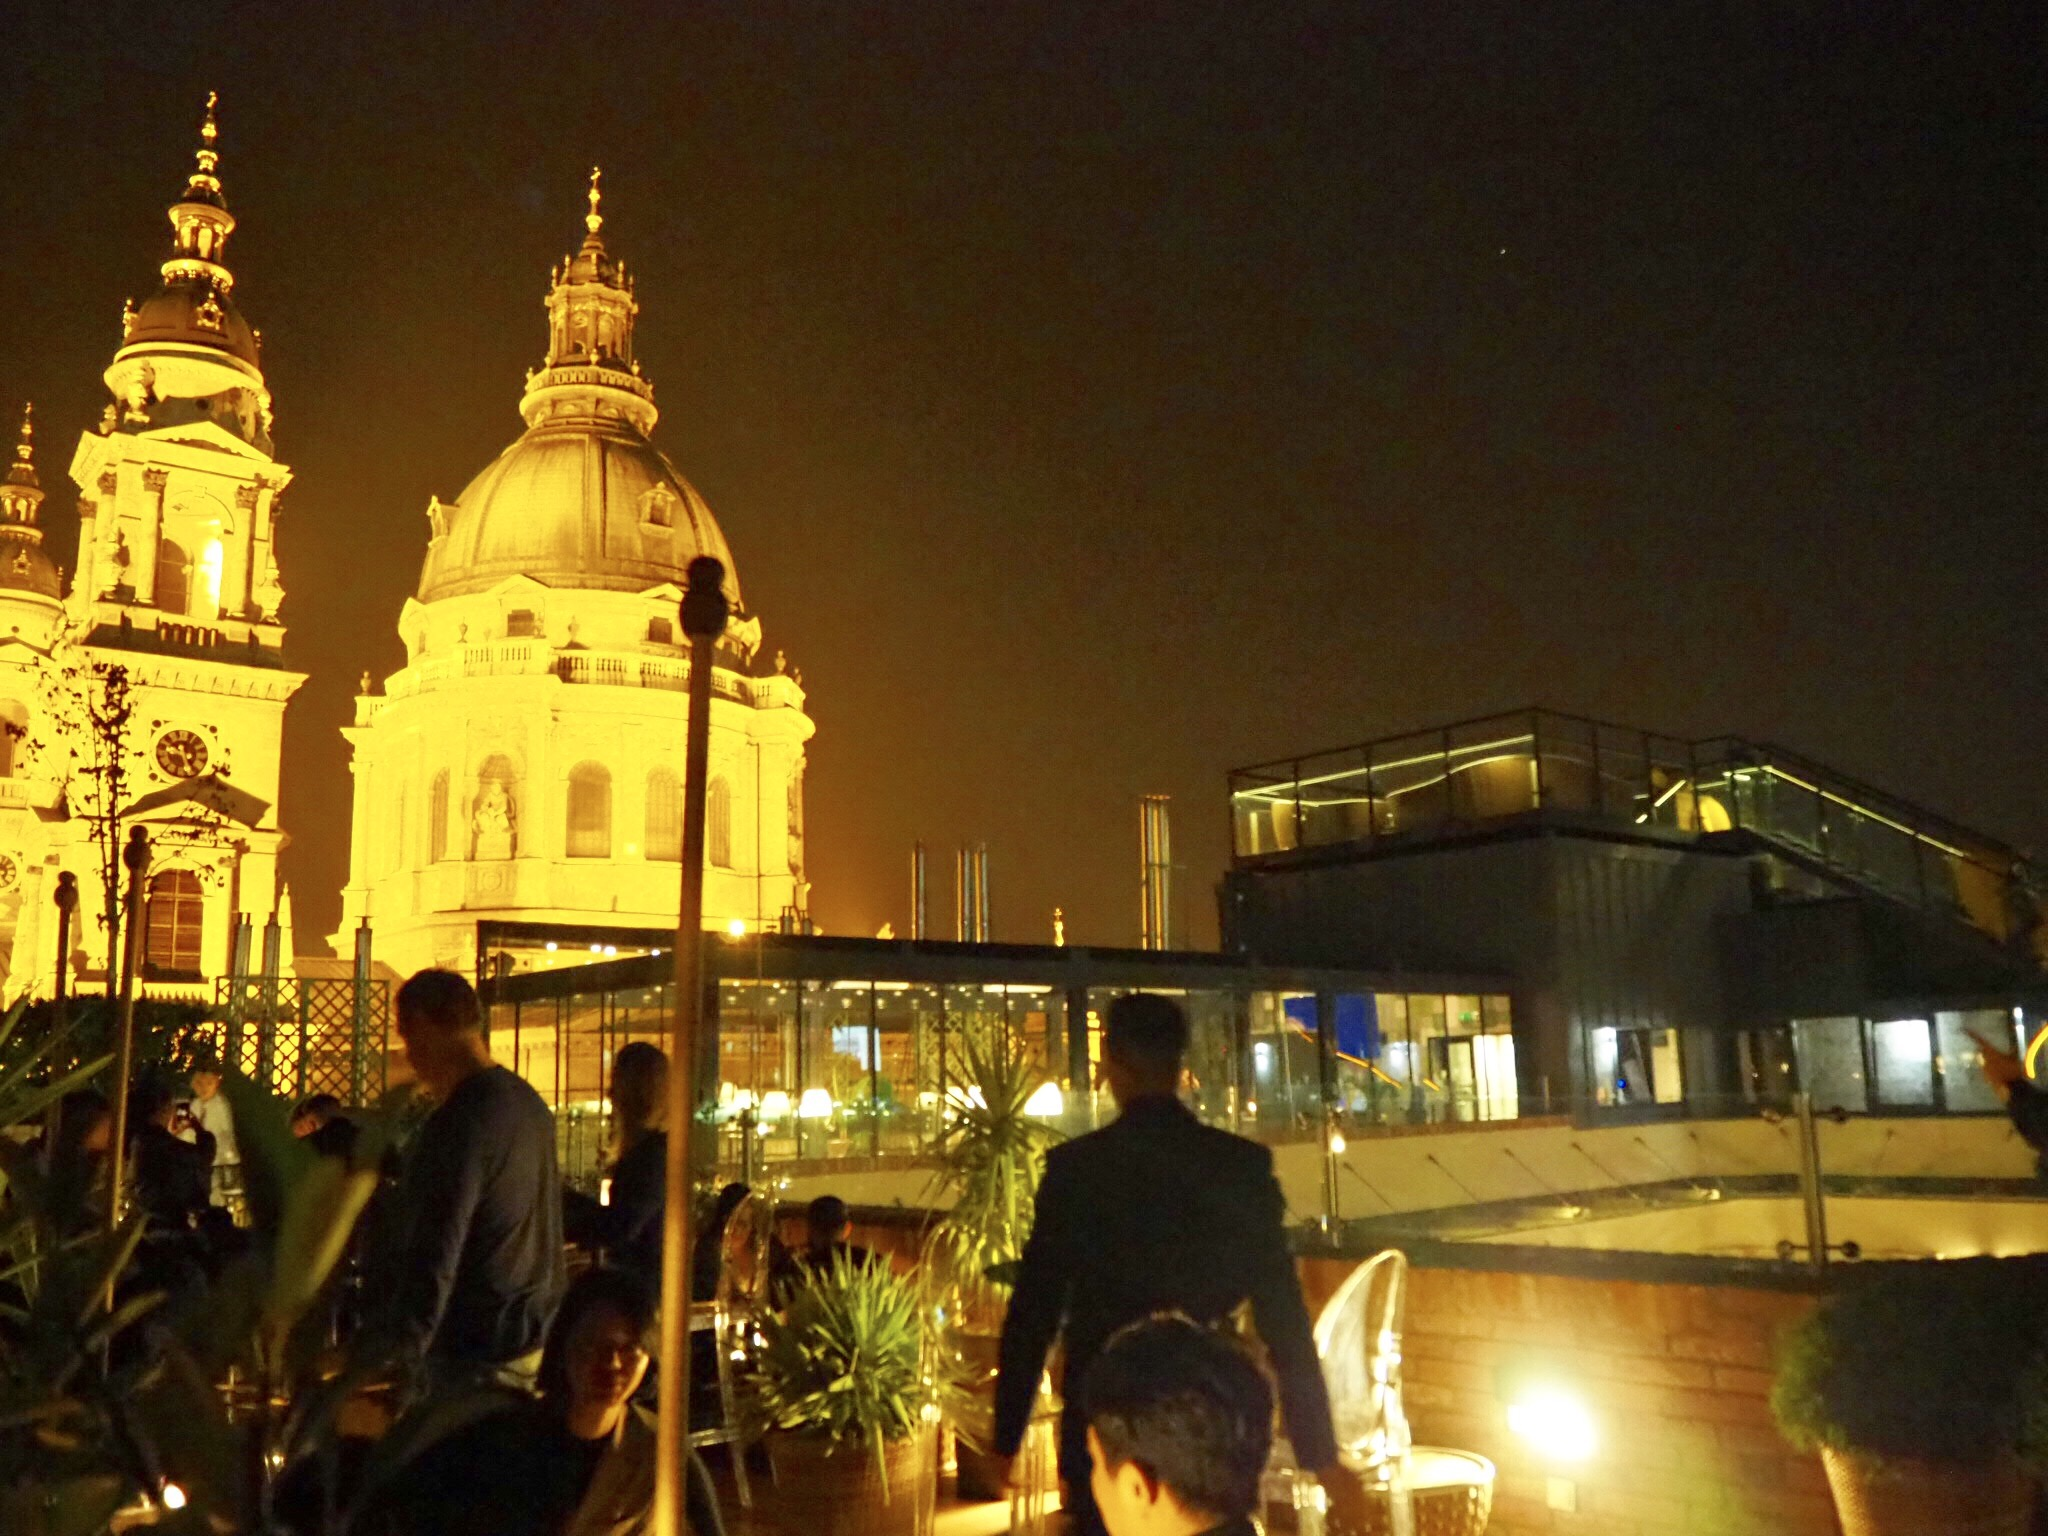 img 4831 1 - Aria Hotel Budapest - High Note Skybar で過ごすブダペストの夜